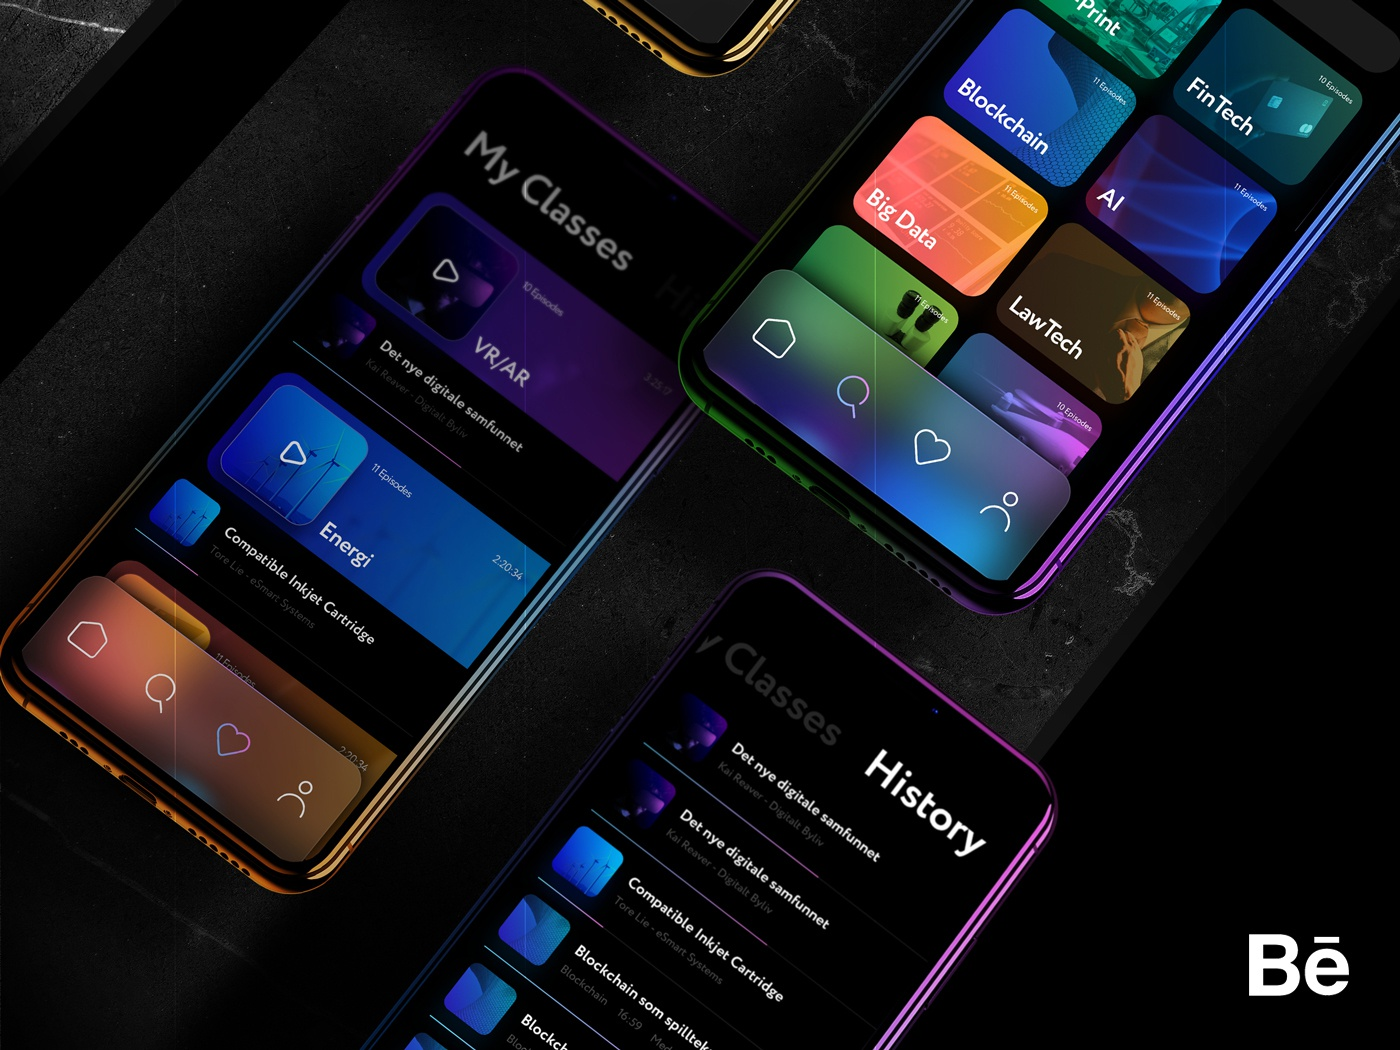 Lørn — New Behance Case Study spotify tech lms e-learning education podcasting podcast cards player mockup colors iphone dark ux mobile ios app ui